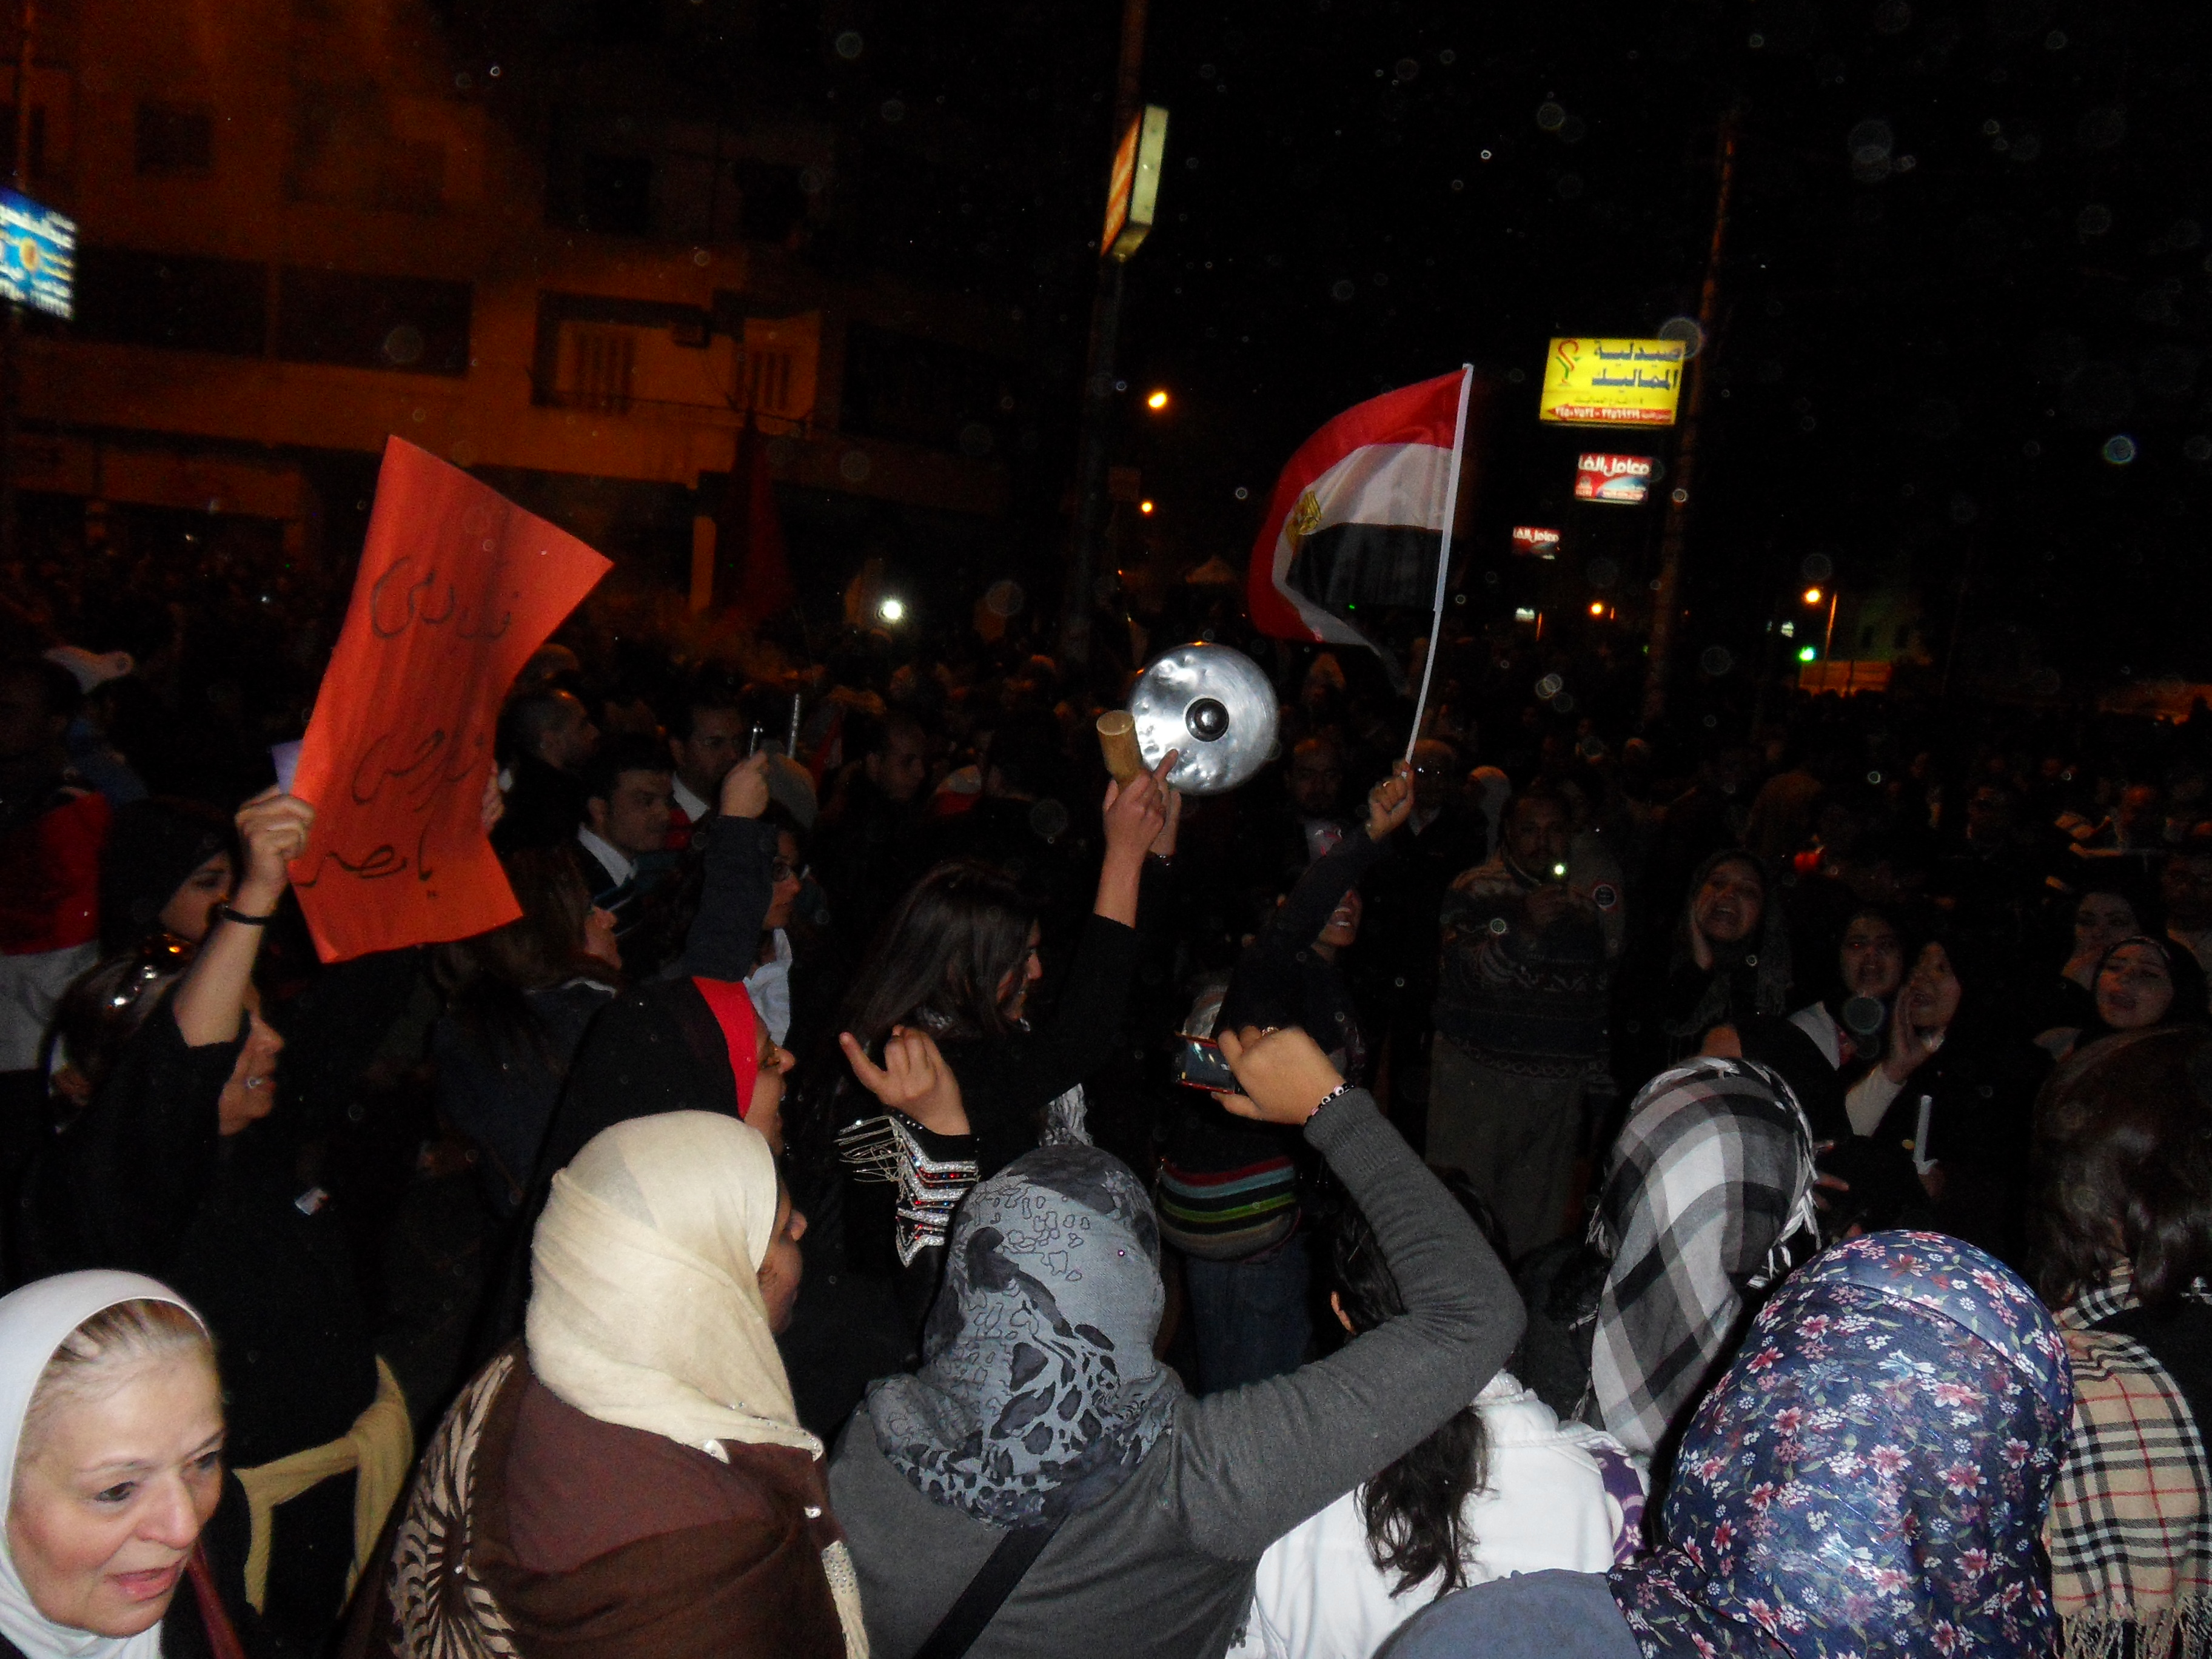 Women singing songs and chanting against Morsi.